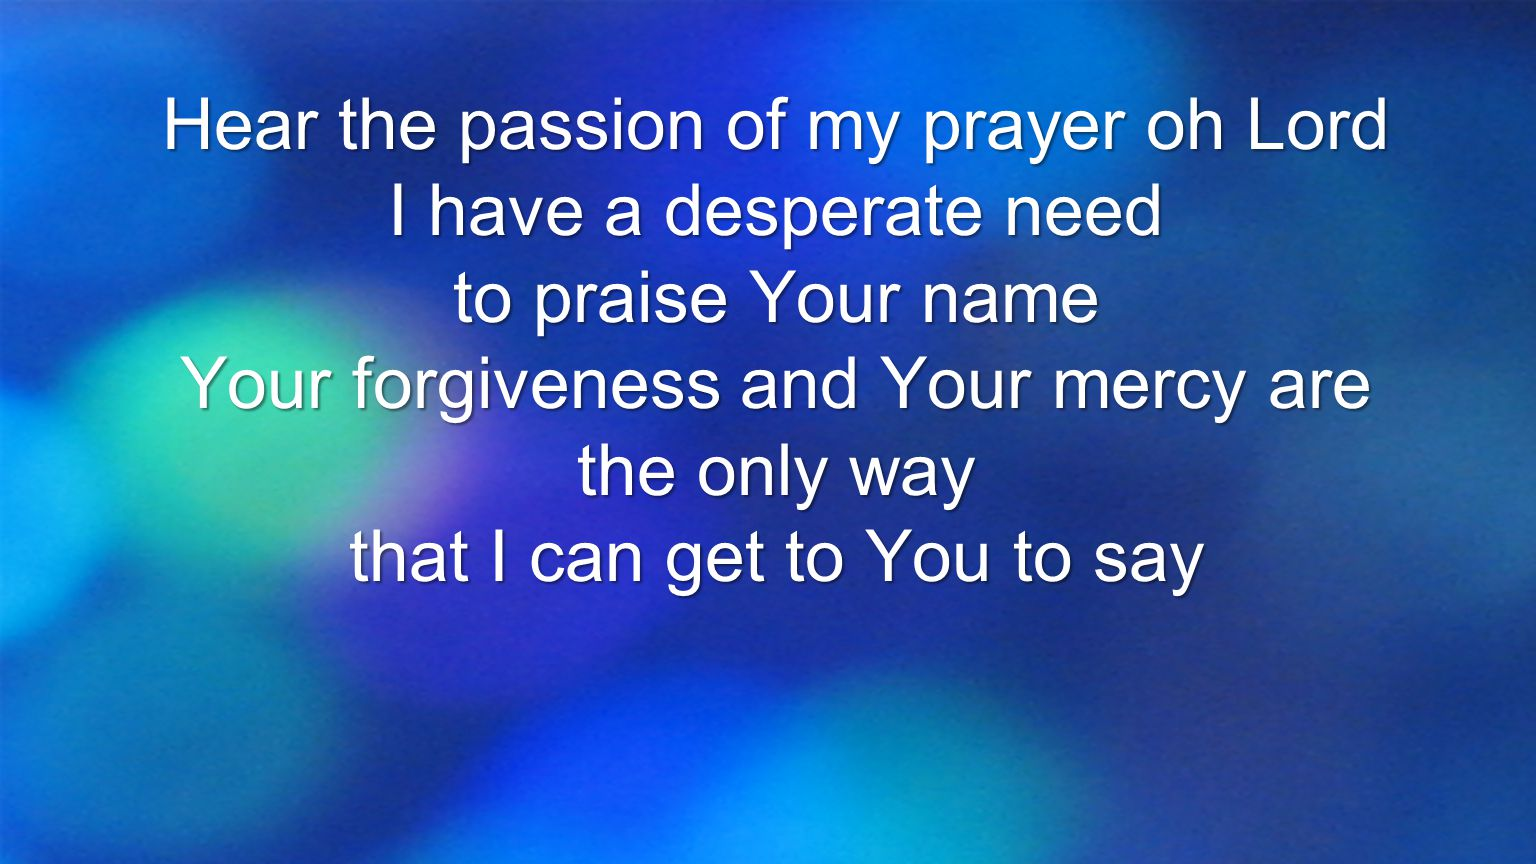 Hear the passion of my prayer oh Lord I have a desperate need to praise Your name Your forgiveness and Your mercy are the only way that I can get to Y